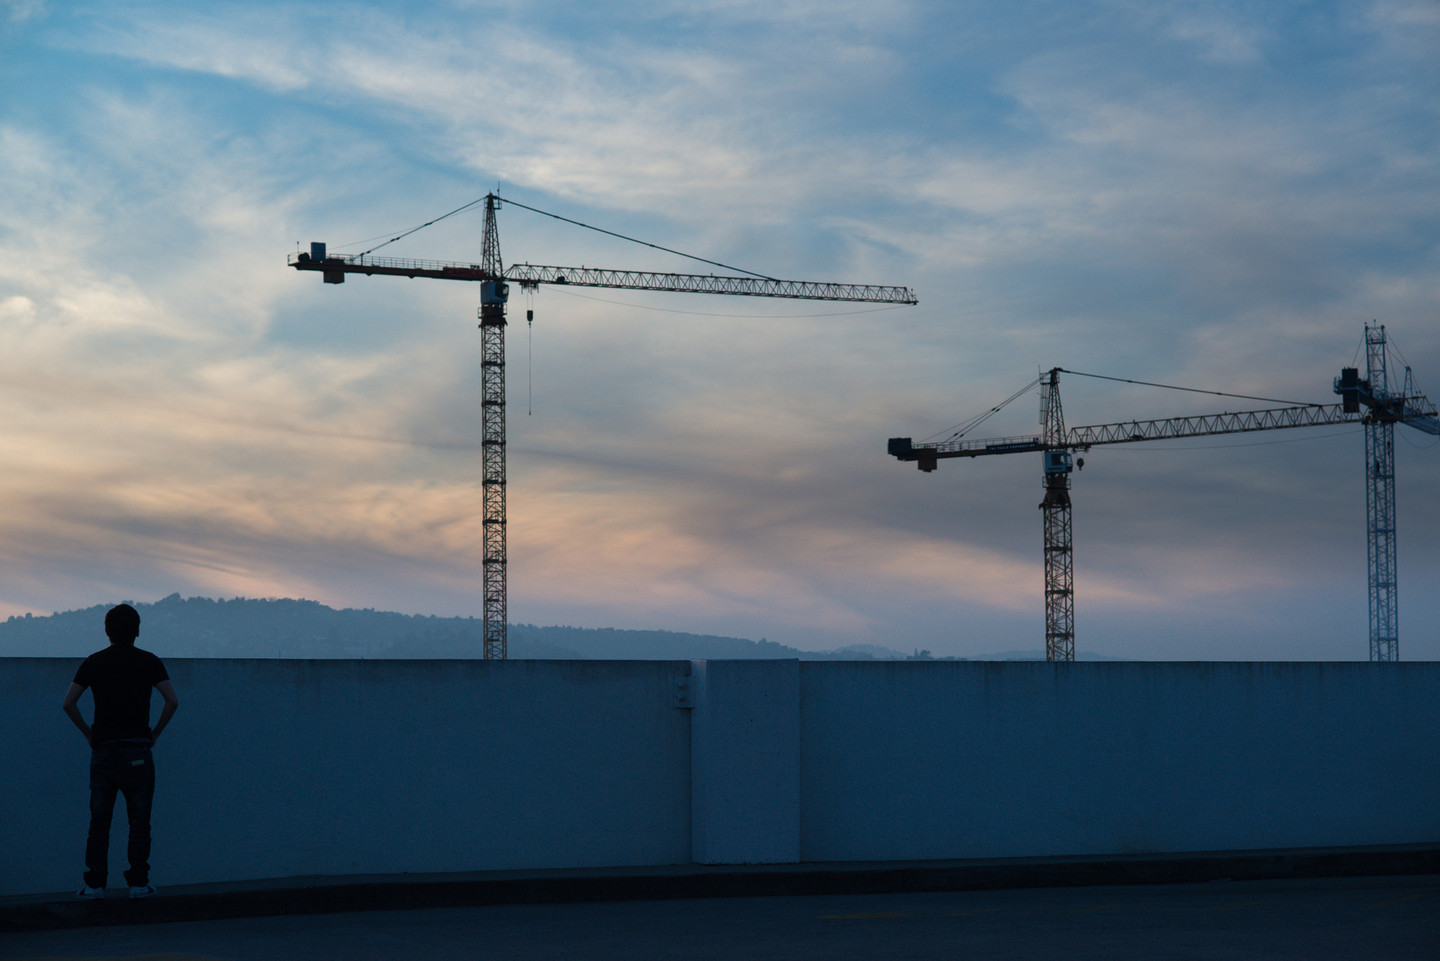 The latest tech boom is remaking downtown Redwood City. (James Tenusan/KQED)